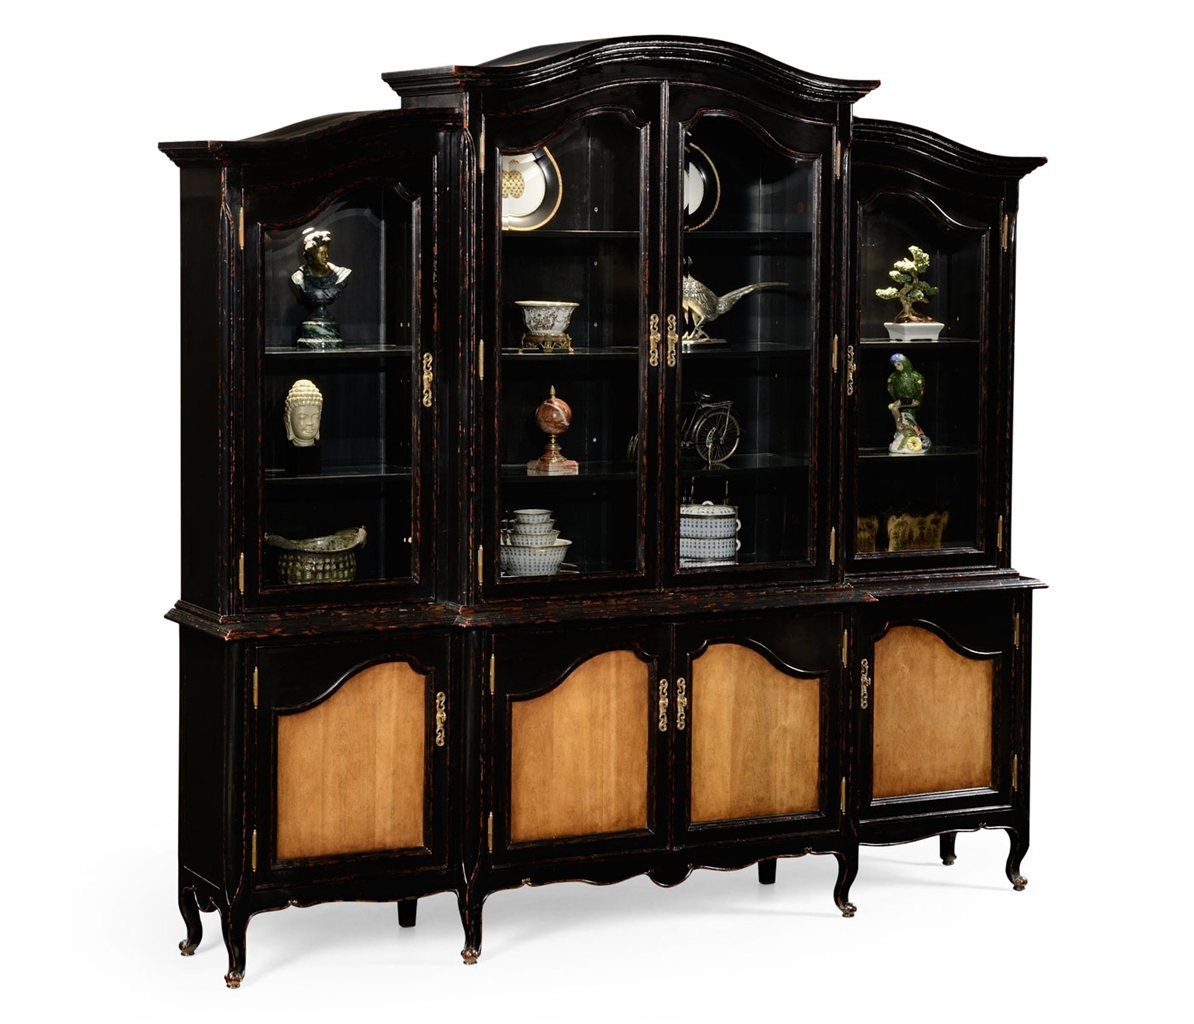 French country china cabinets - Breakfronts China Cabinets Display Cabinet French Country Furnishings